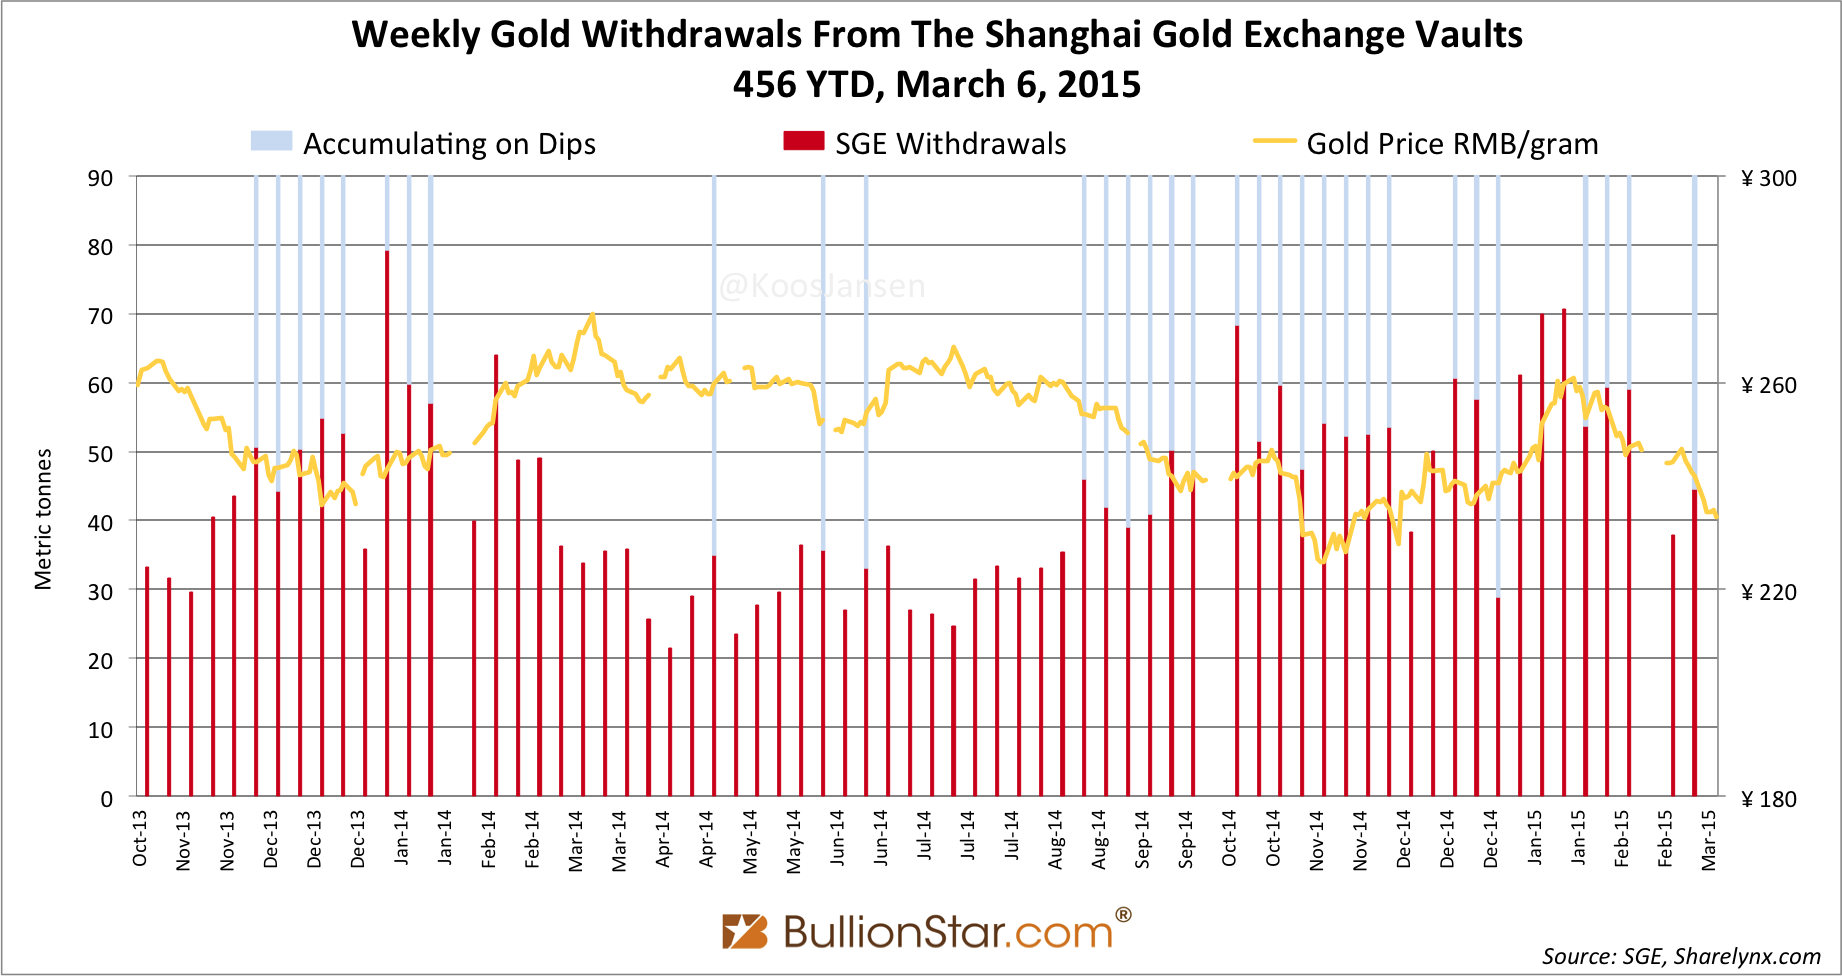 Shanghai Gold Exchange SGE withdrawals delivery only 2014 - 2015 week 9